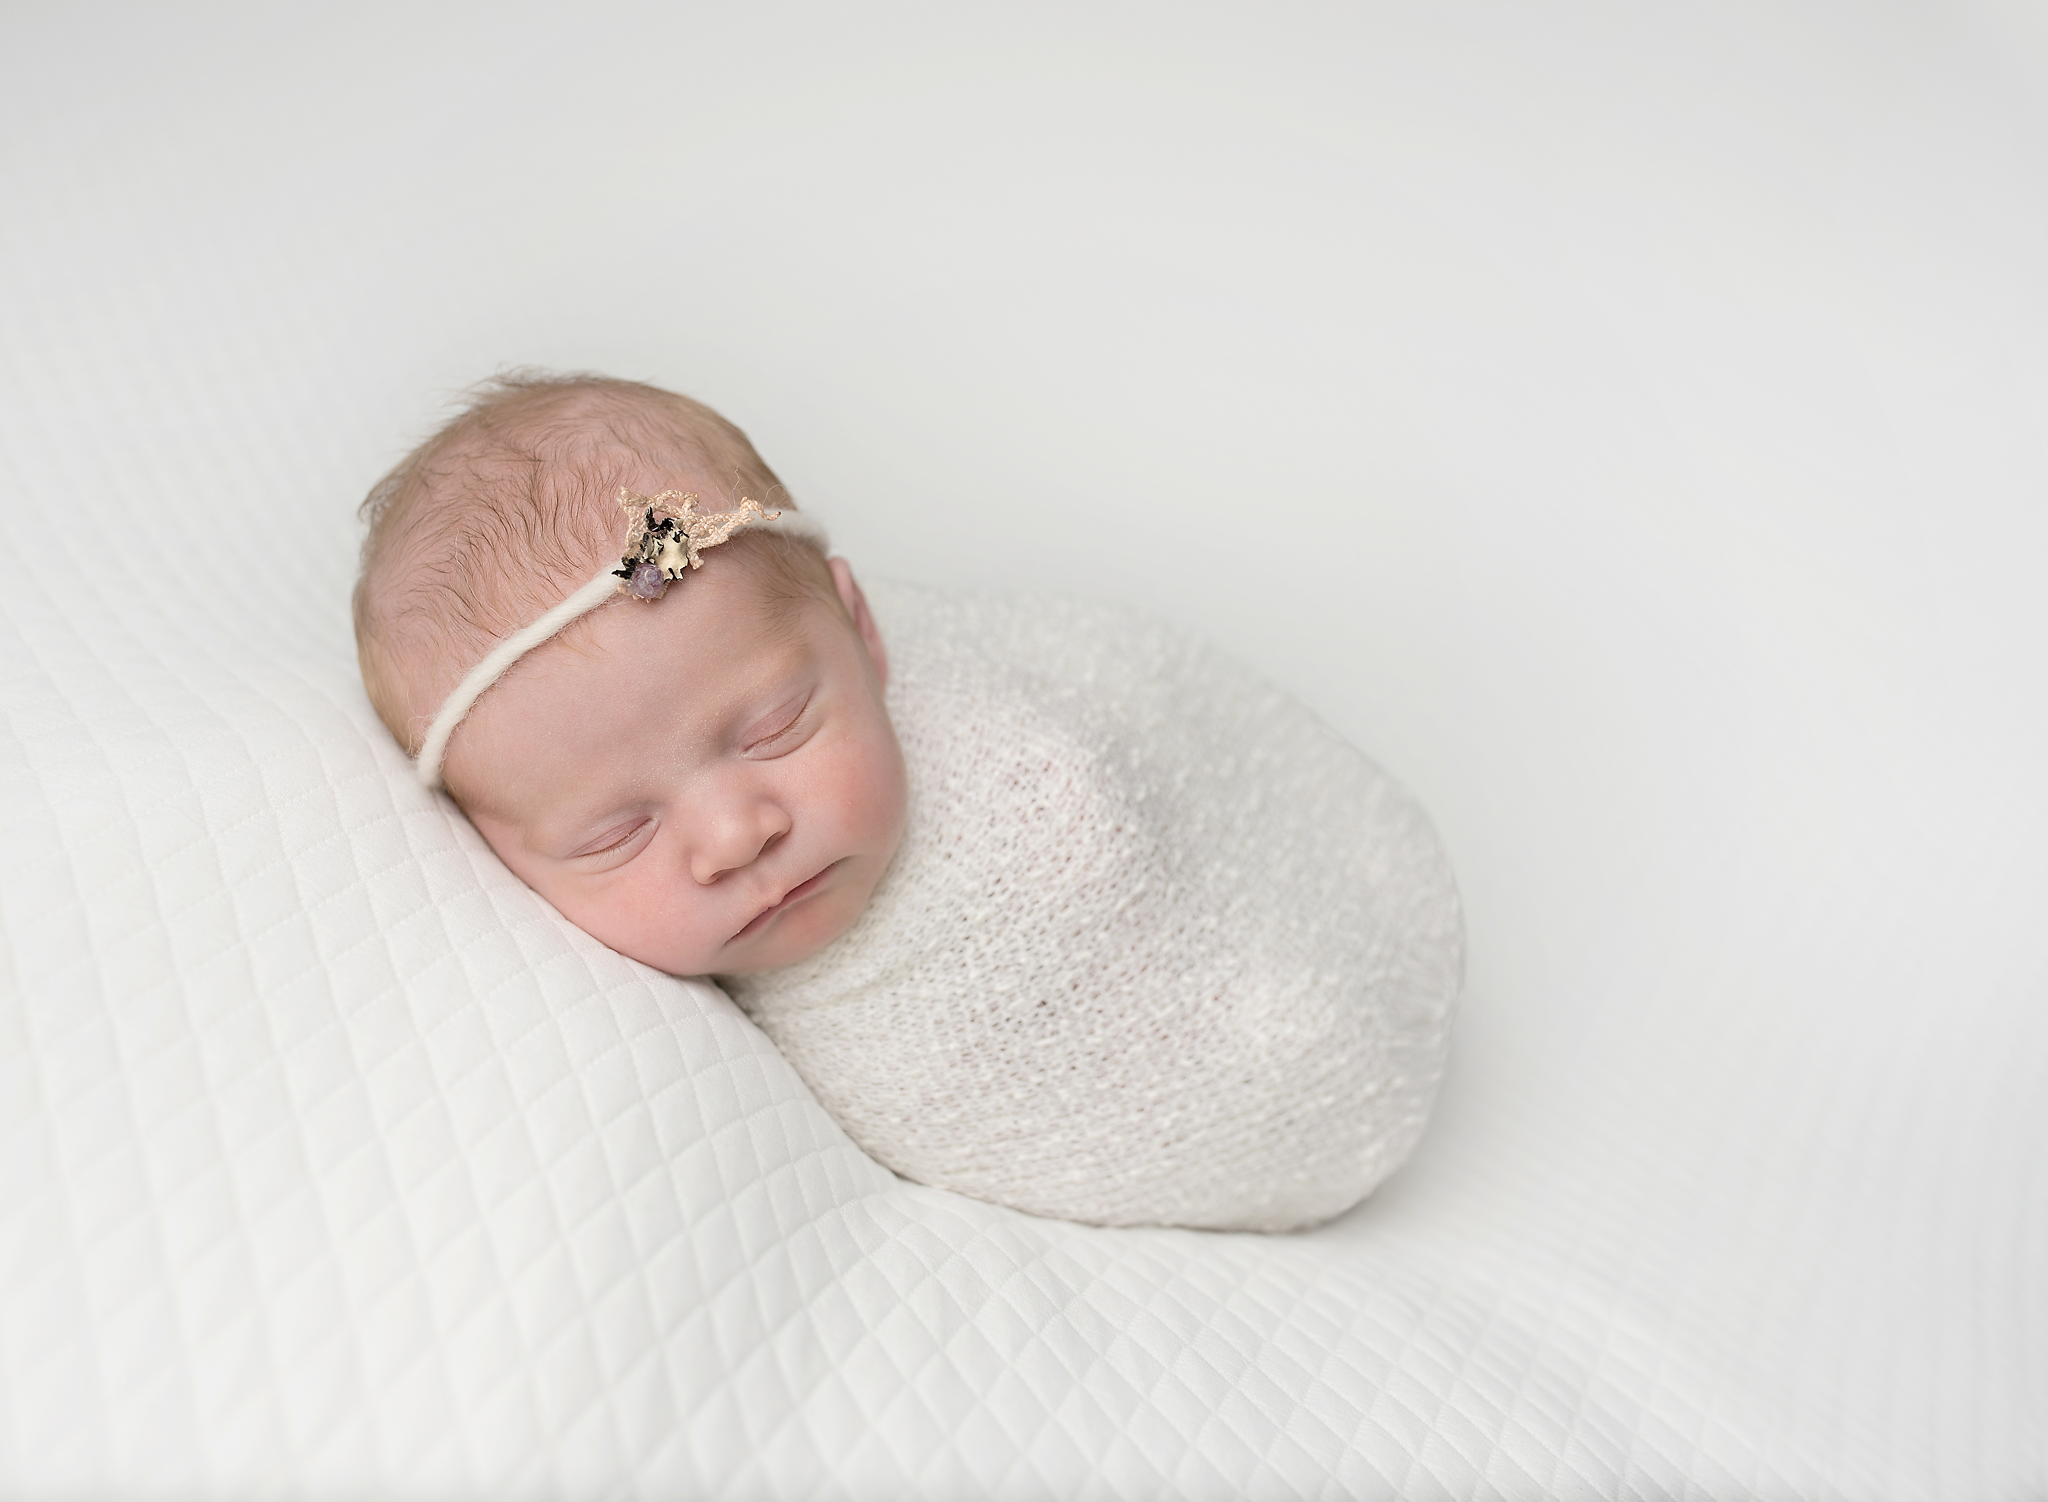 Titling/Alt Text/Description: 1. Newborn Photography Jacksonville 2. Jacksonville Newborn Photographer 3. St Augustine Newborn Photographer